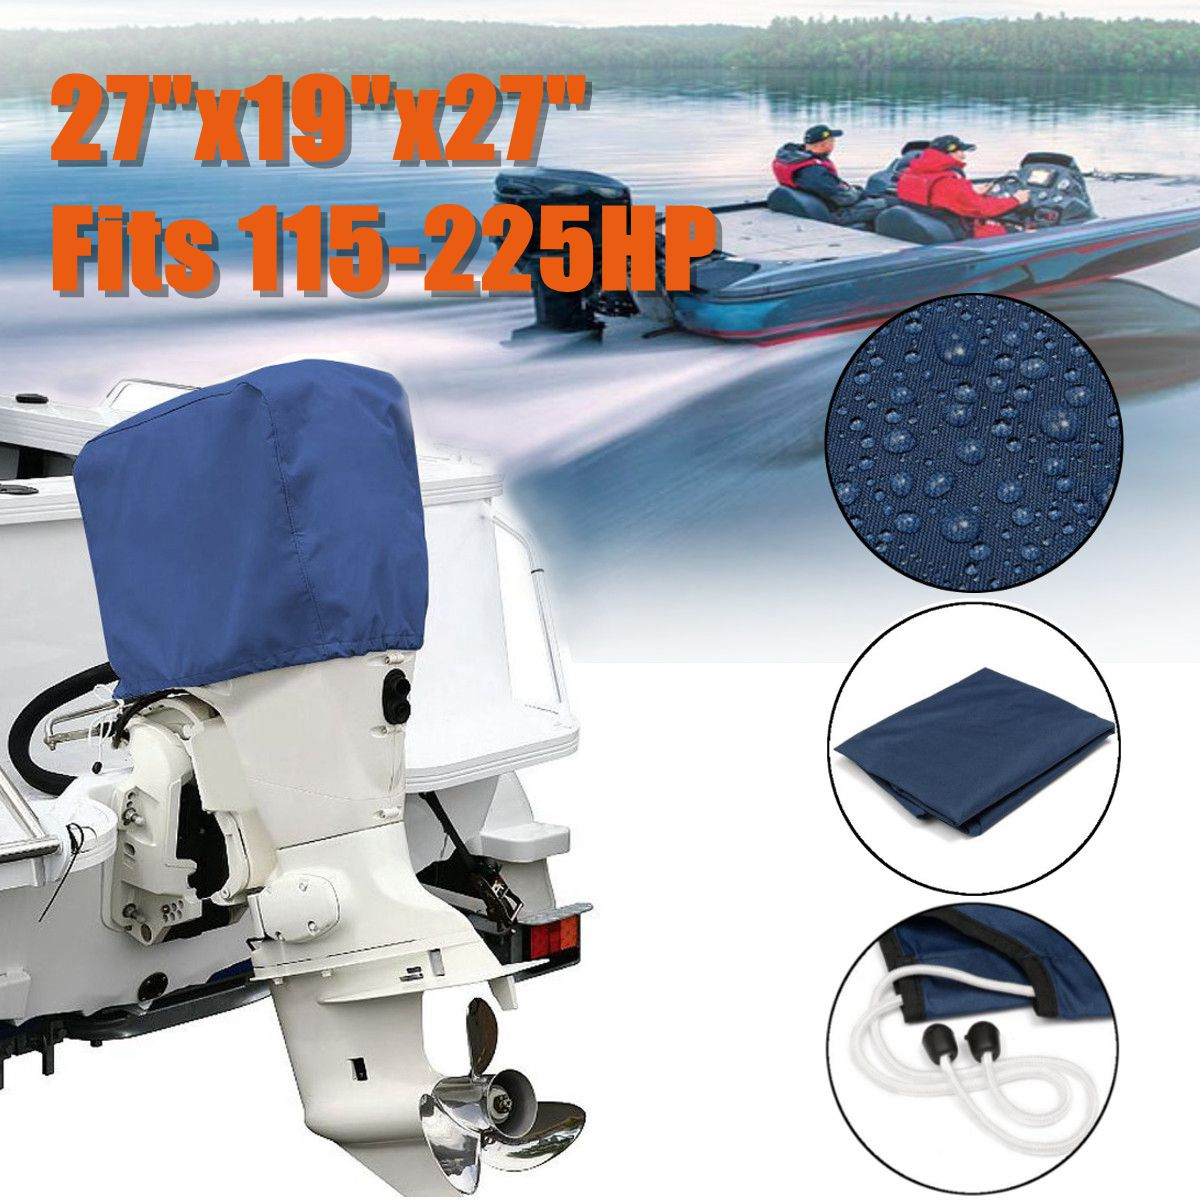 Blue Boat Outboard Motor Engine Cover 300D Waterproof Fits For HP 50-115